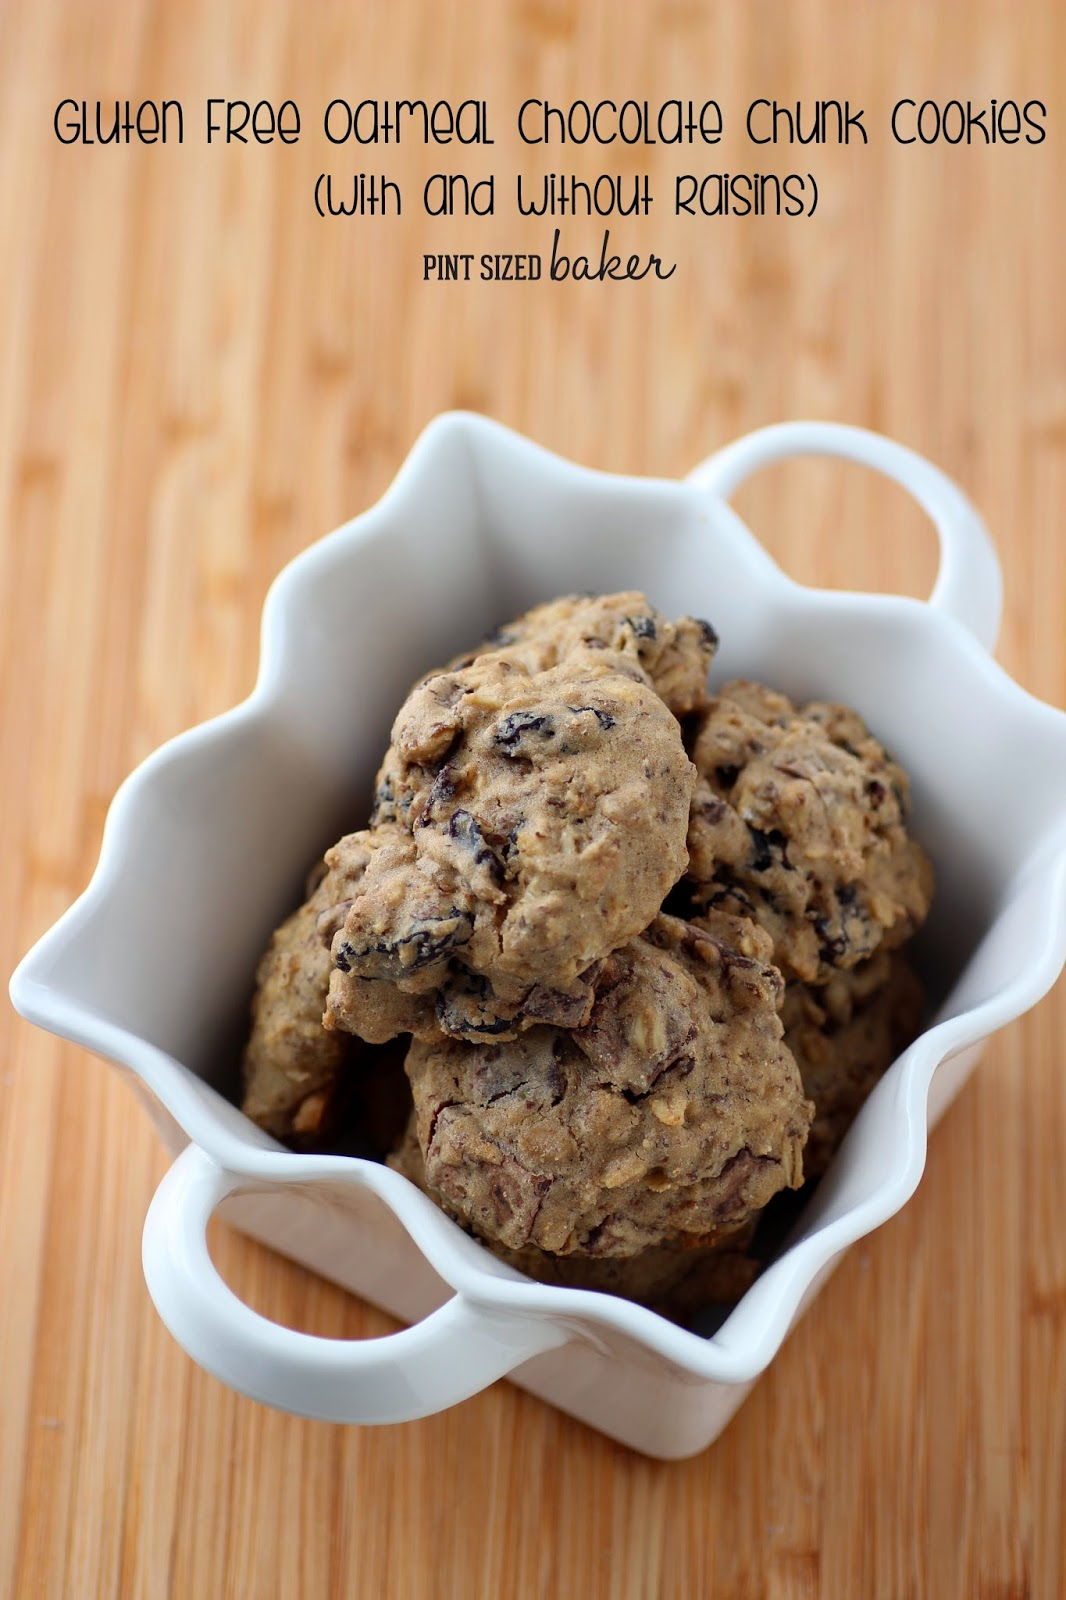 A great recipe for Gluten Free Oatmeal Chocolate Chunk Cookies. The raisins are totally optional, but I loved them!